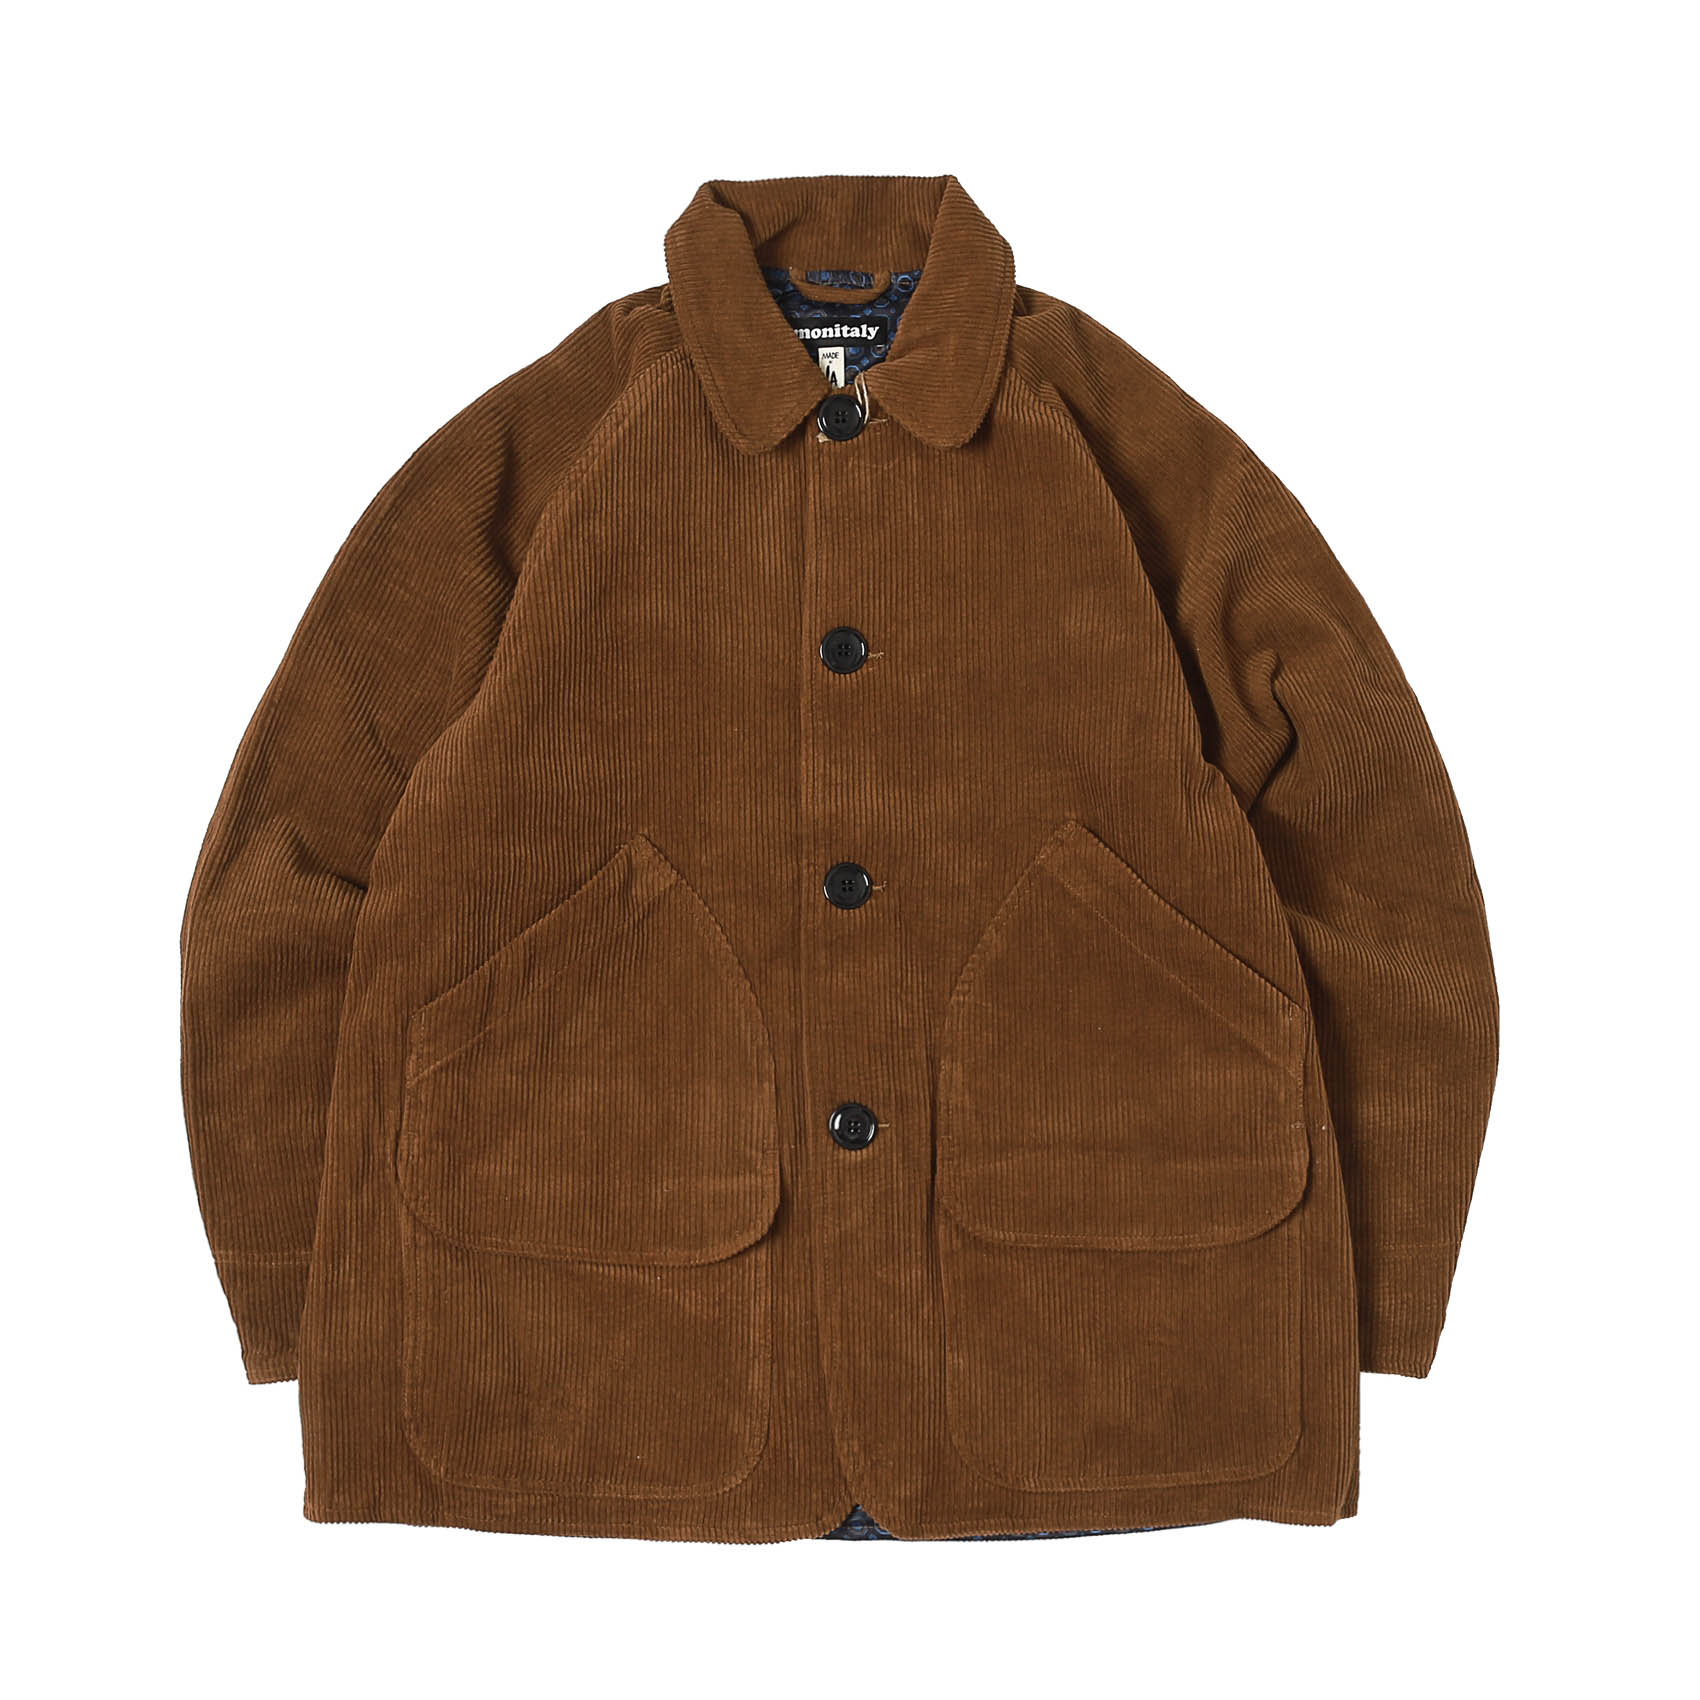 CORDUROY FARMER'S JACKET - CHESTNUT